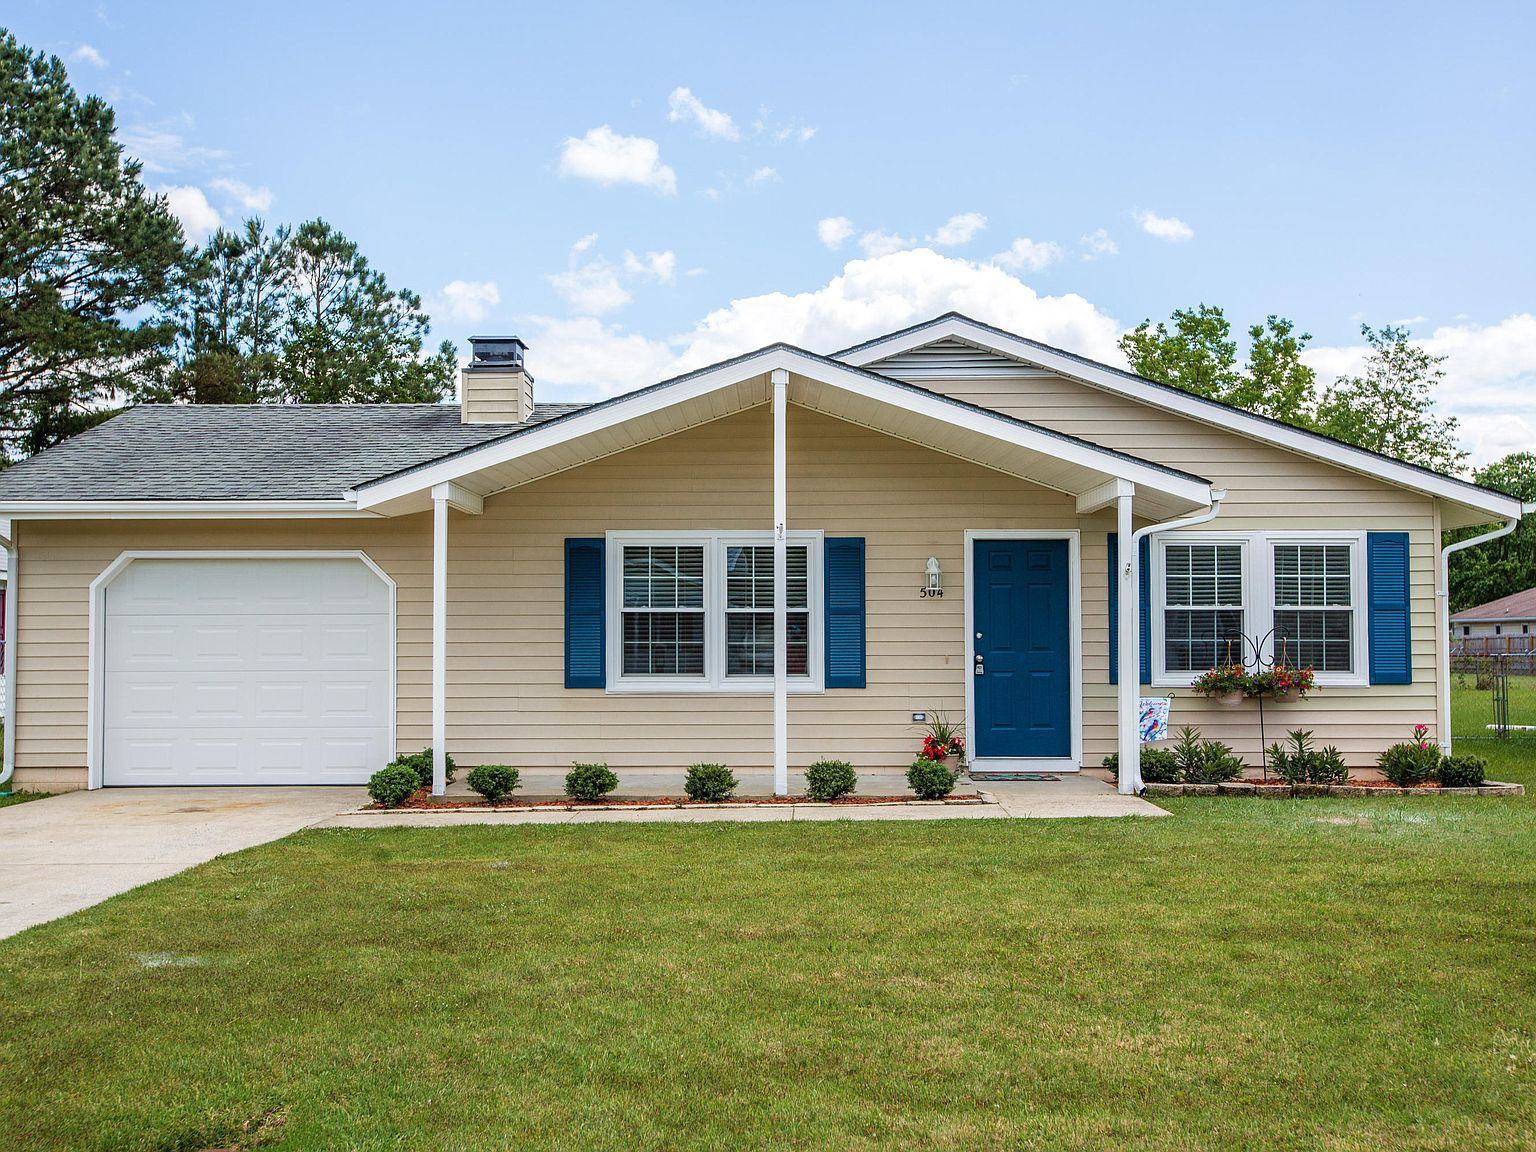 504 Cougar Pl Havelock Nc 28532 Zillow